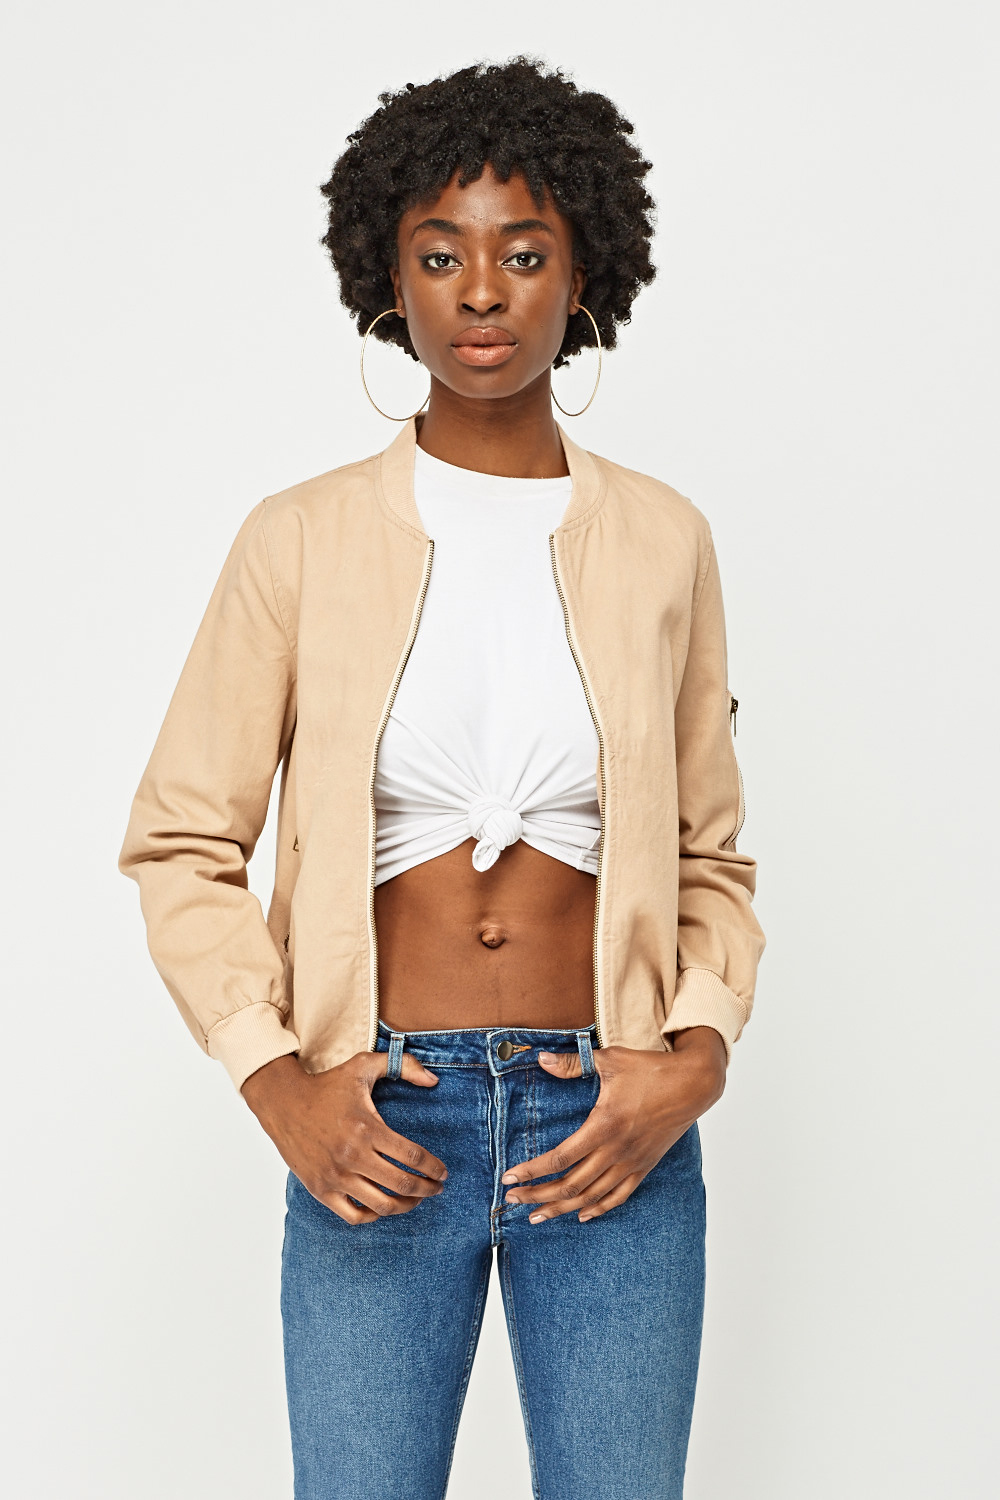 148b1f997 Bad Girl Patch Bomber Jacket - Just £5